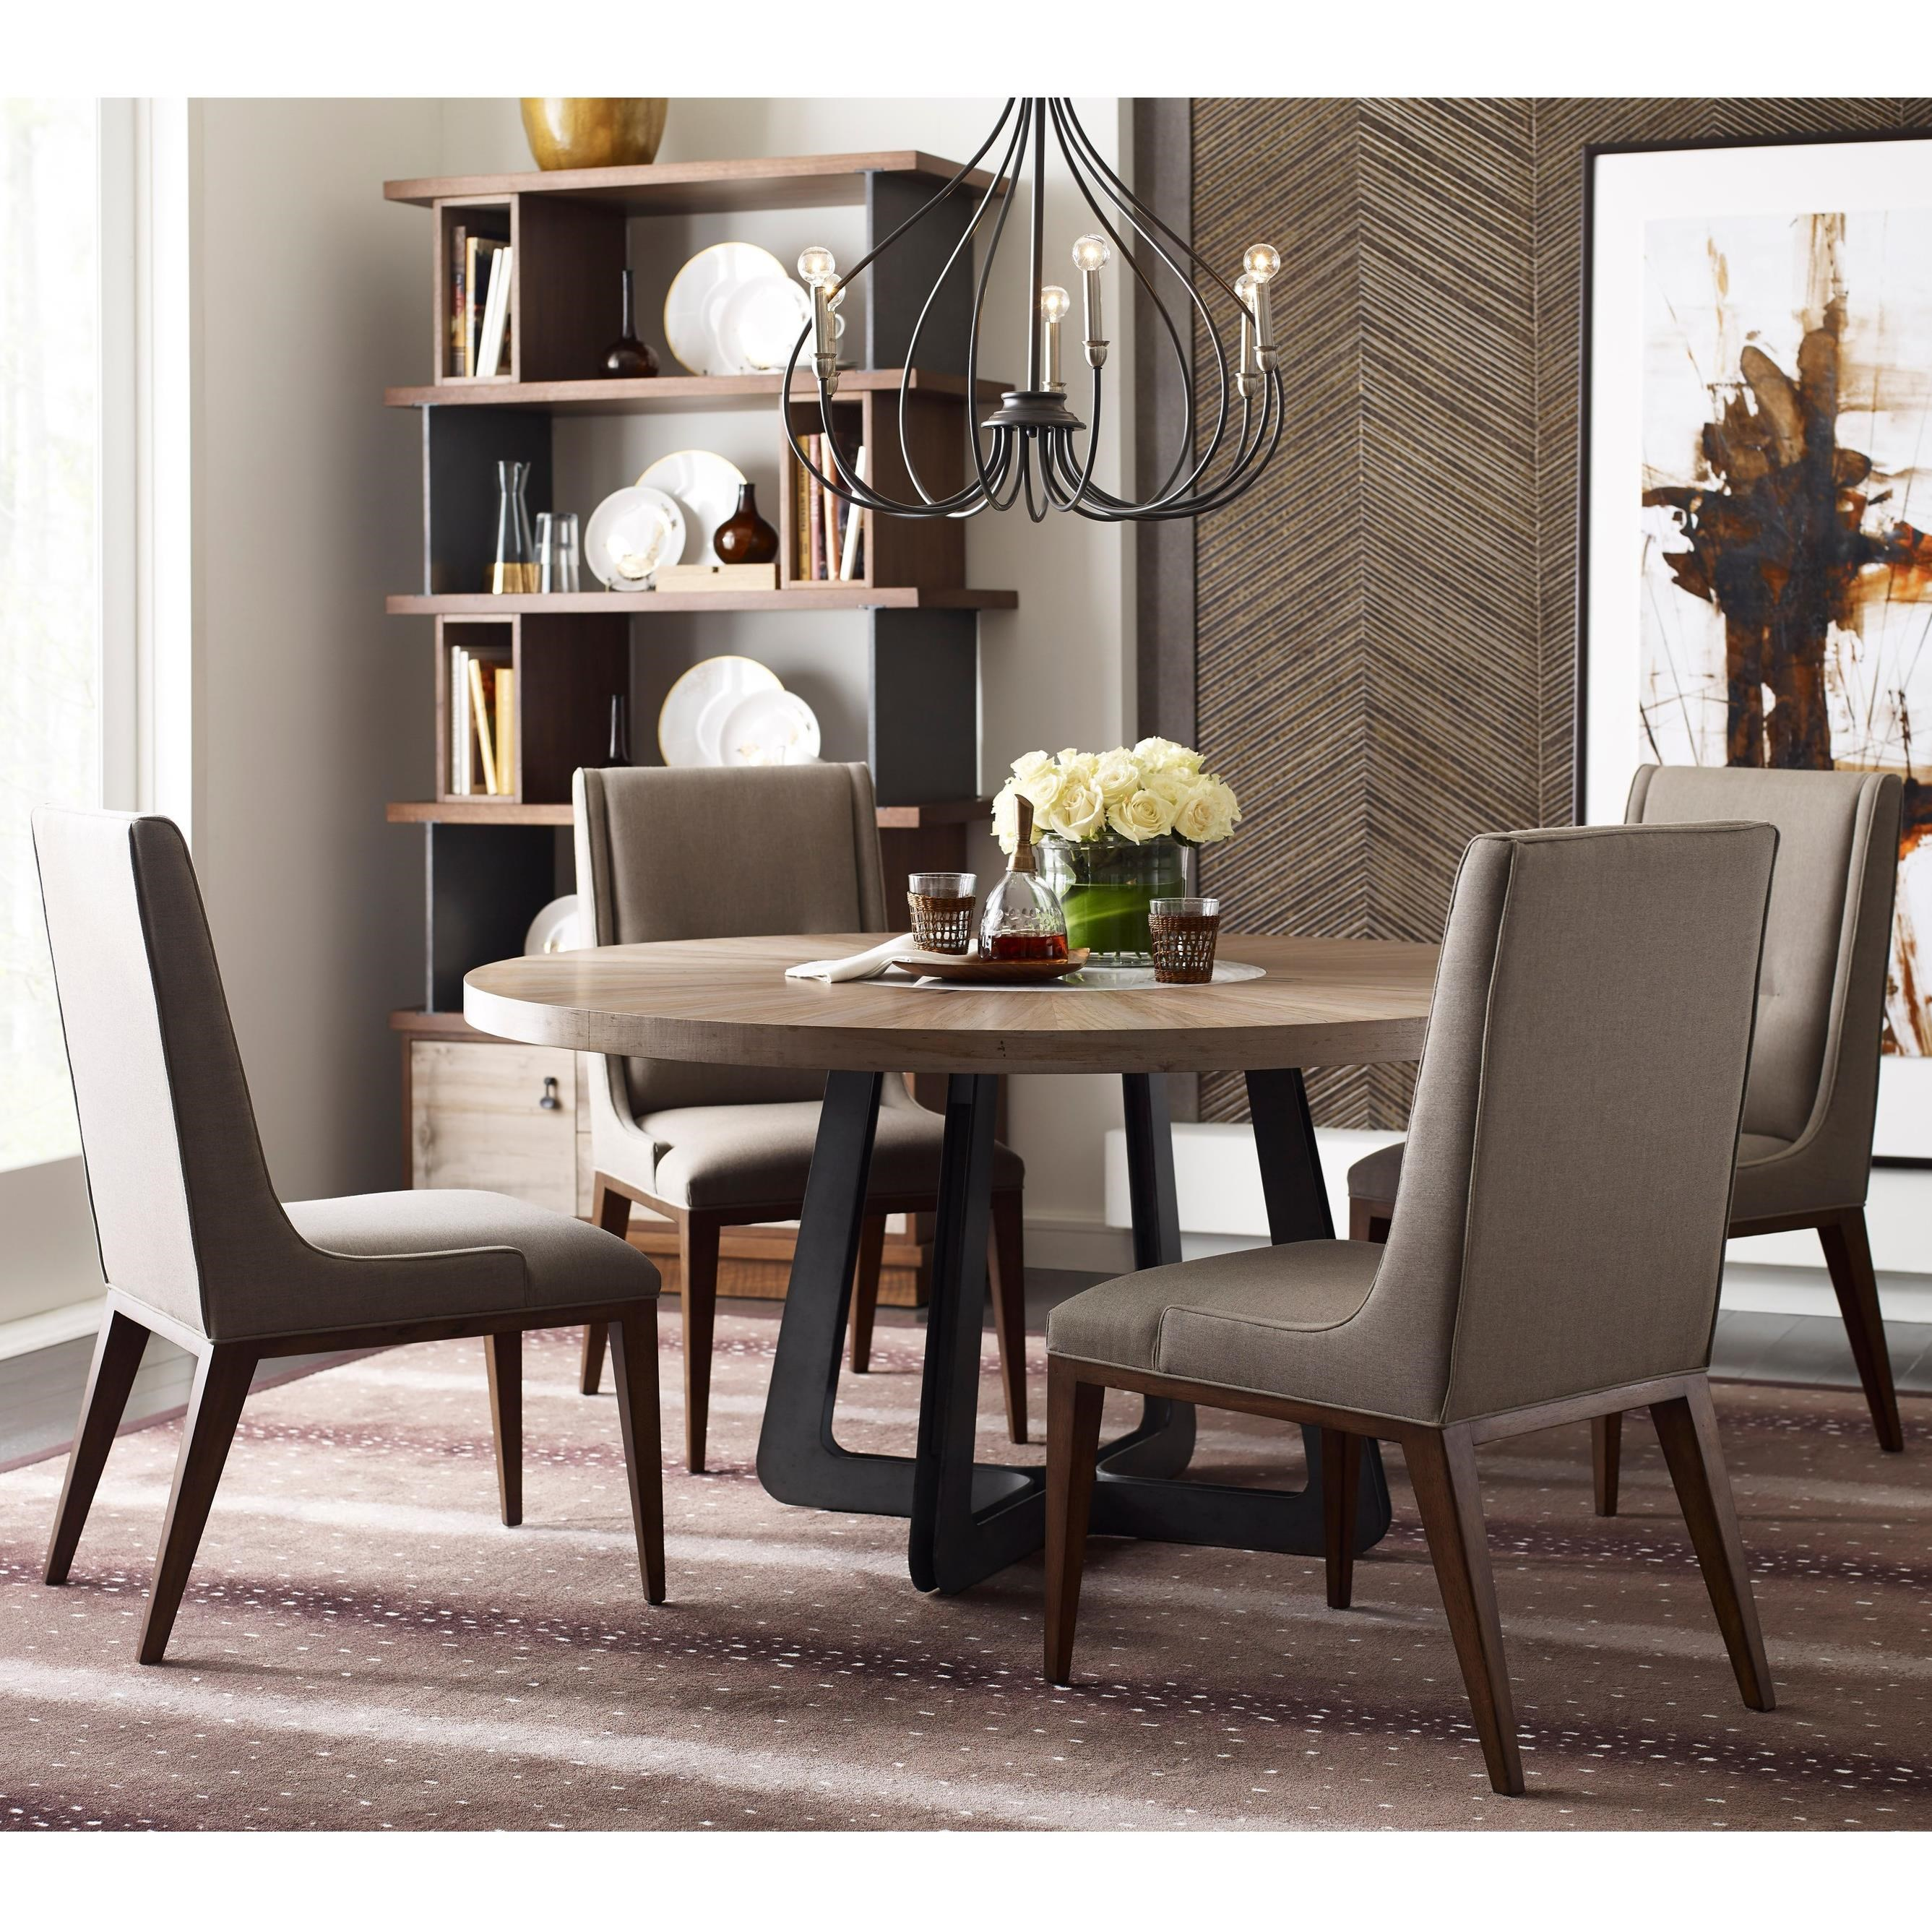 Modern Synergy Round Table and Chair Set by American Drew at Stoney Creek Furniture